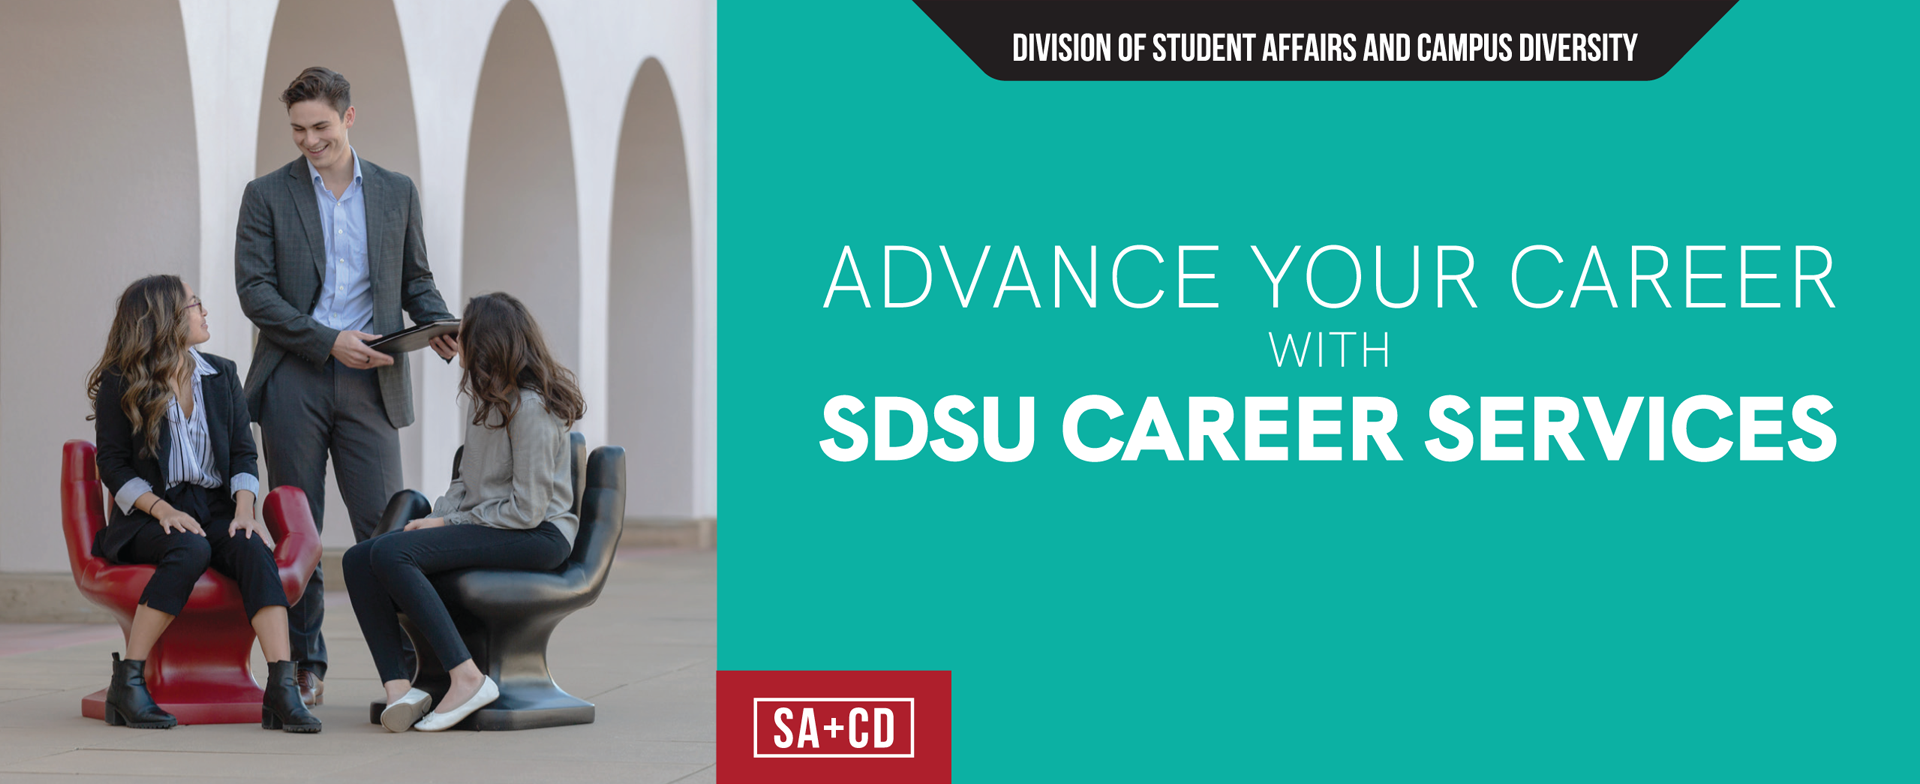 Handshake - advance your career with SSU career services